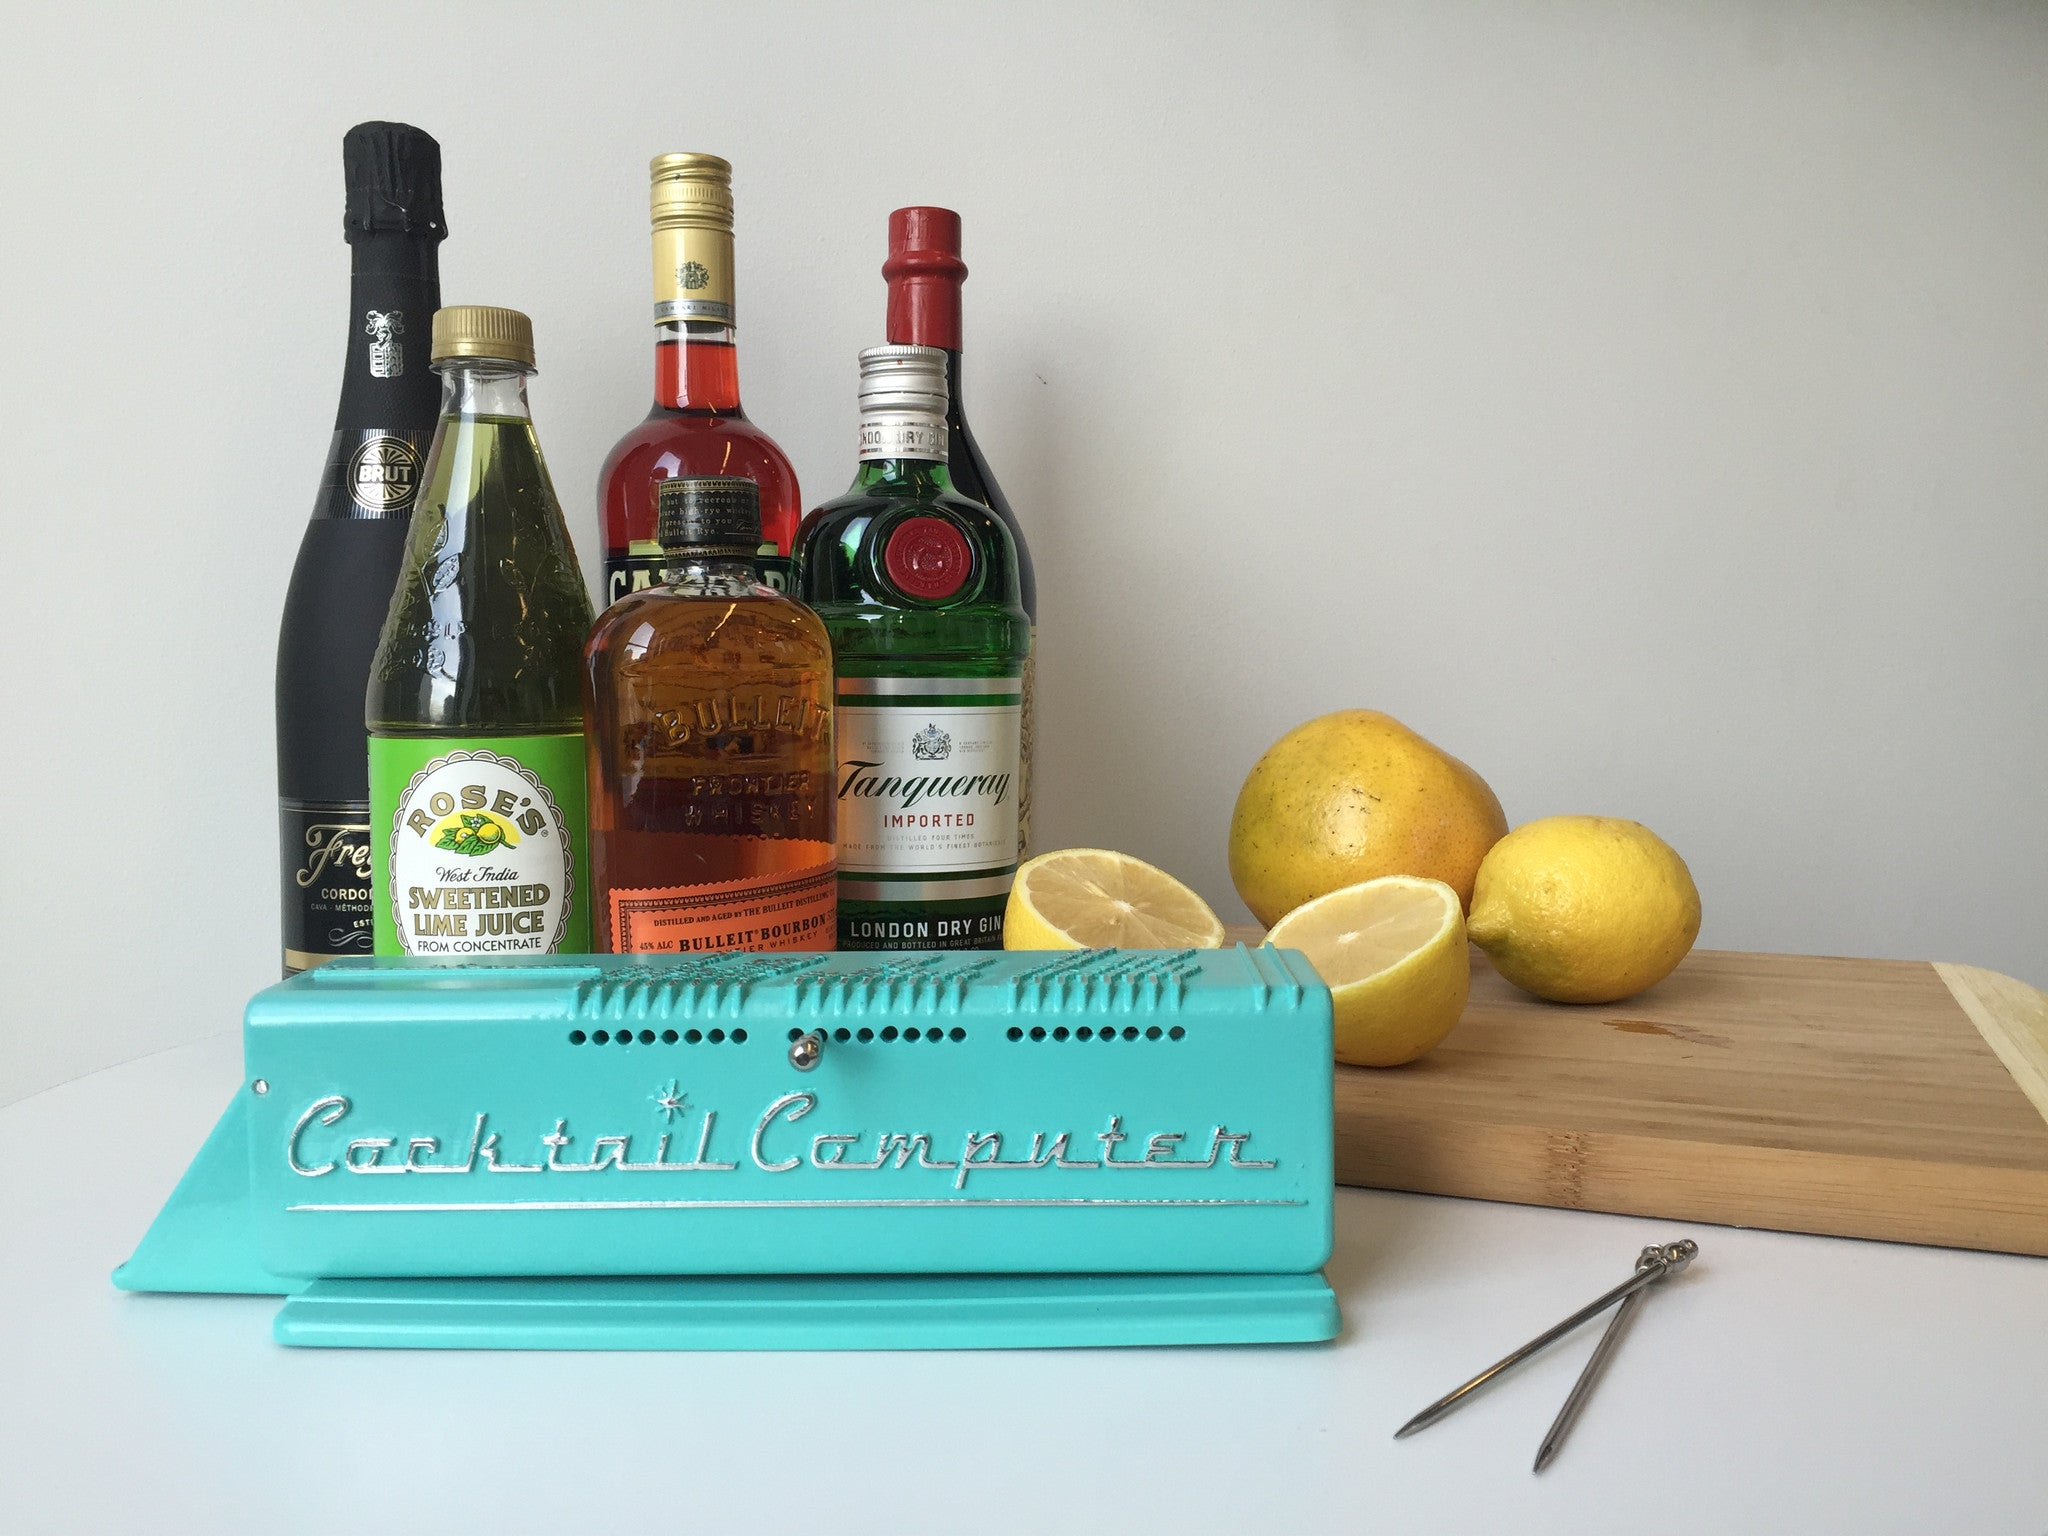 Cocktail Computer Kit with Liquor